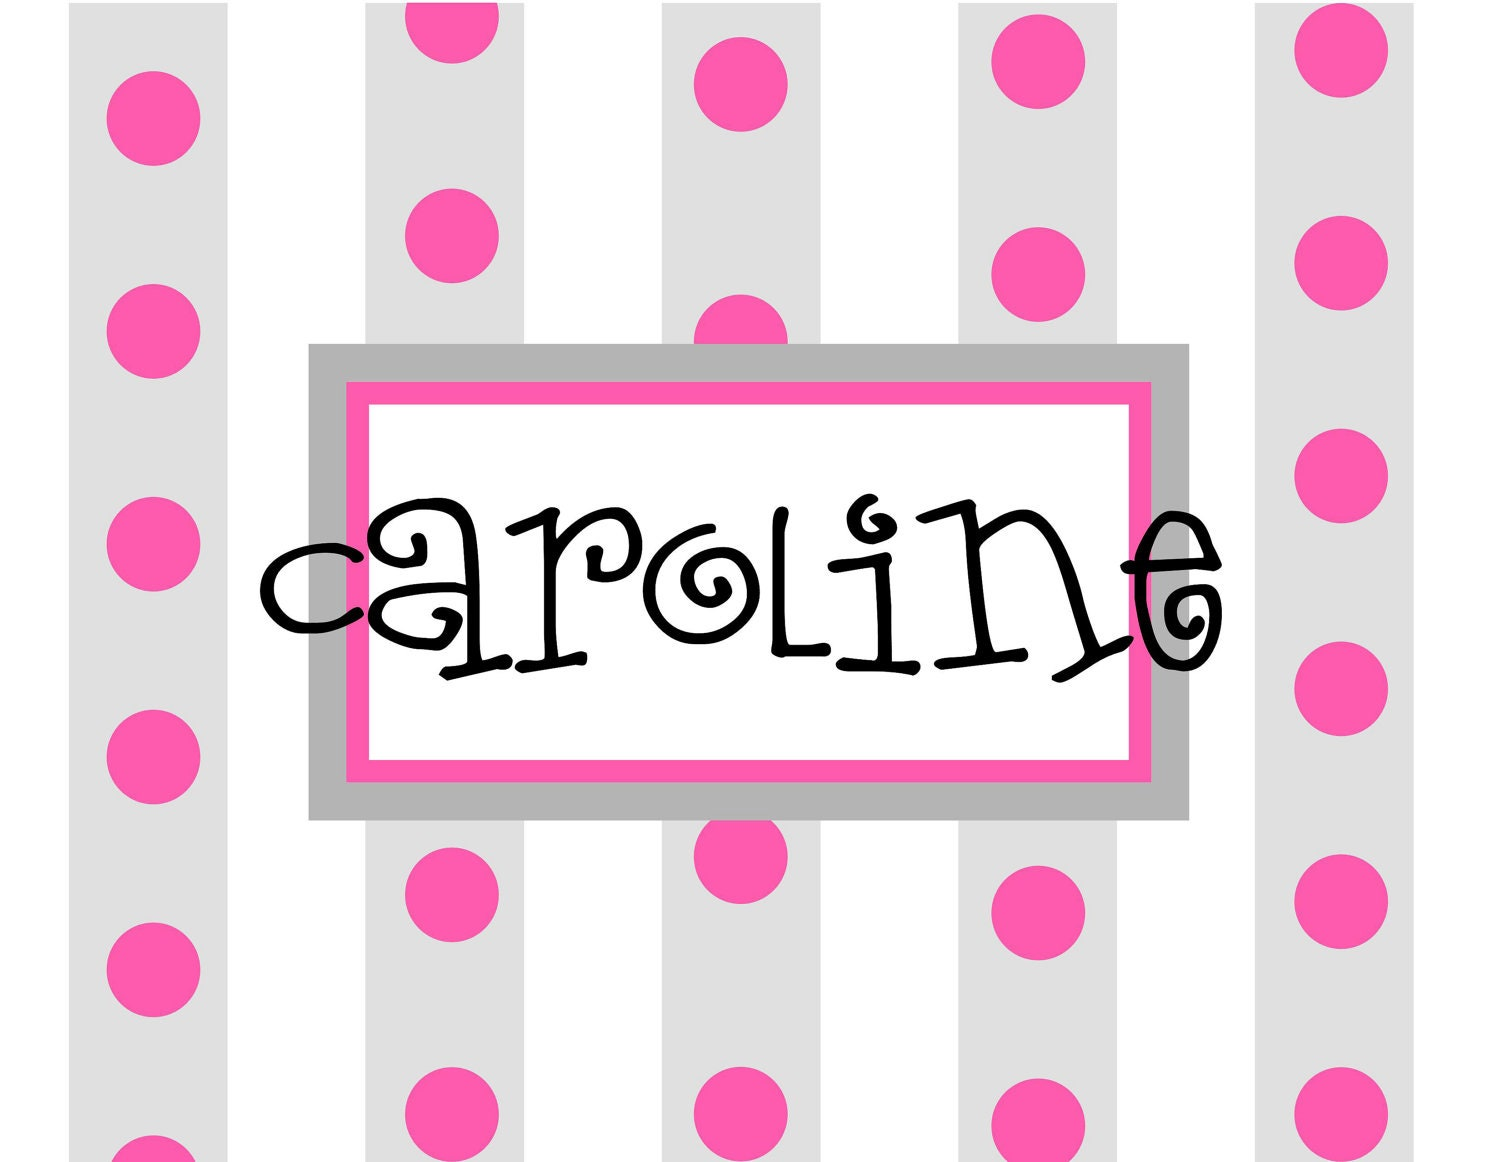 Personalized notecards for adult caregivers